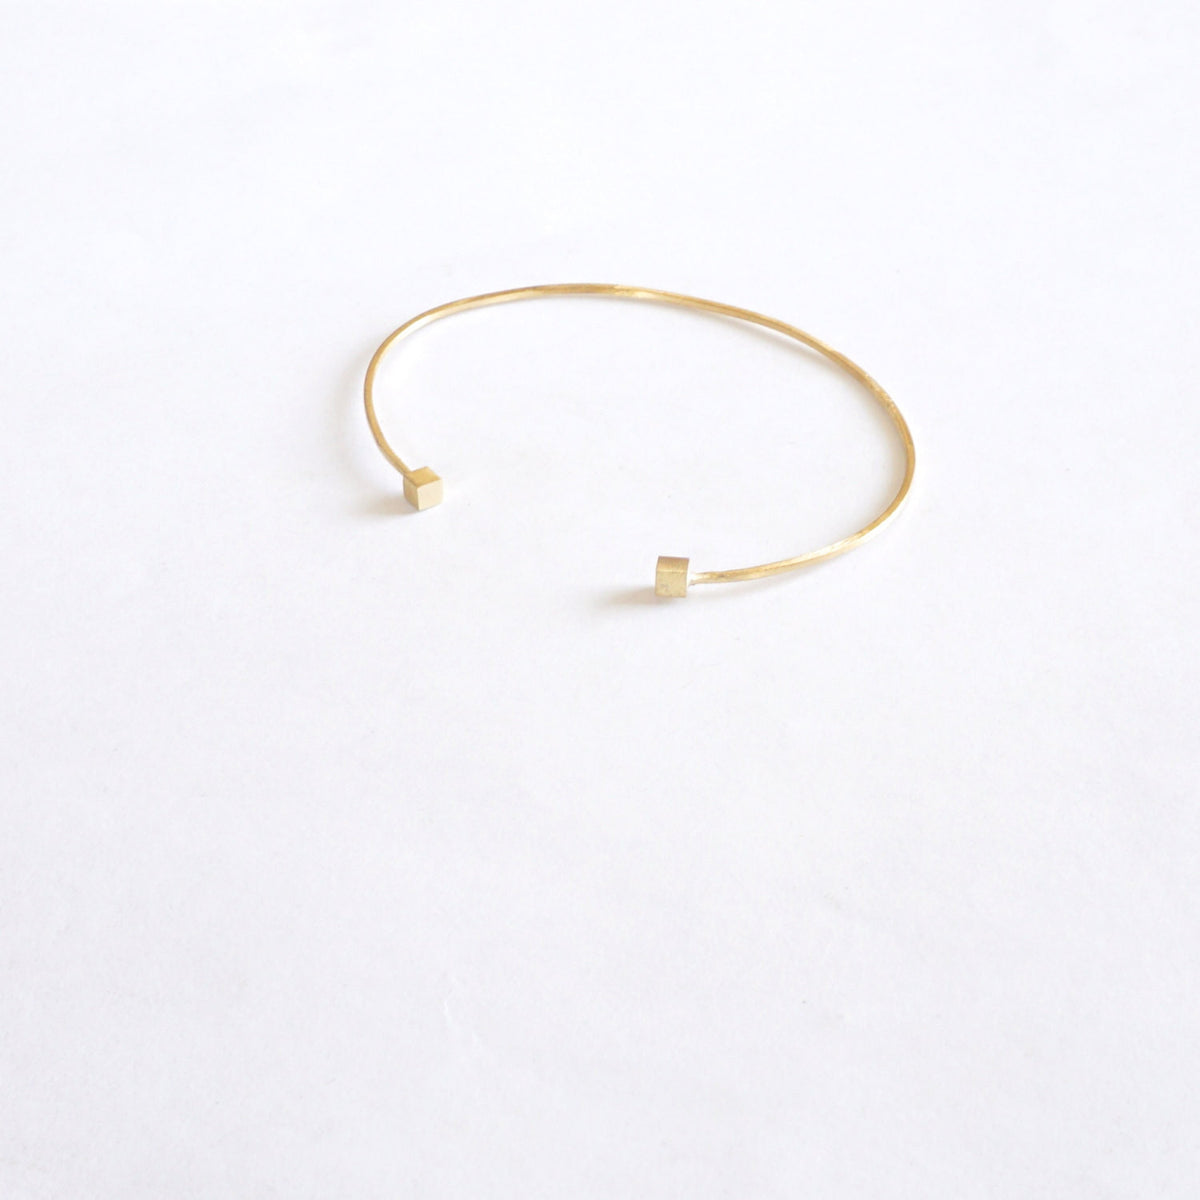 Simple Yet Elegant, Hand-Made Open Cuff Bangle Bracelet With Double Cube Ends in Gold Colored Brass or Sterling Silver - 0207 - Virginia Wynne Designs